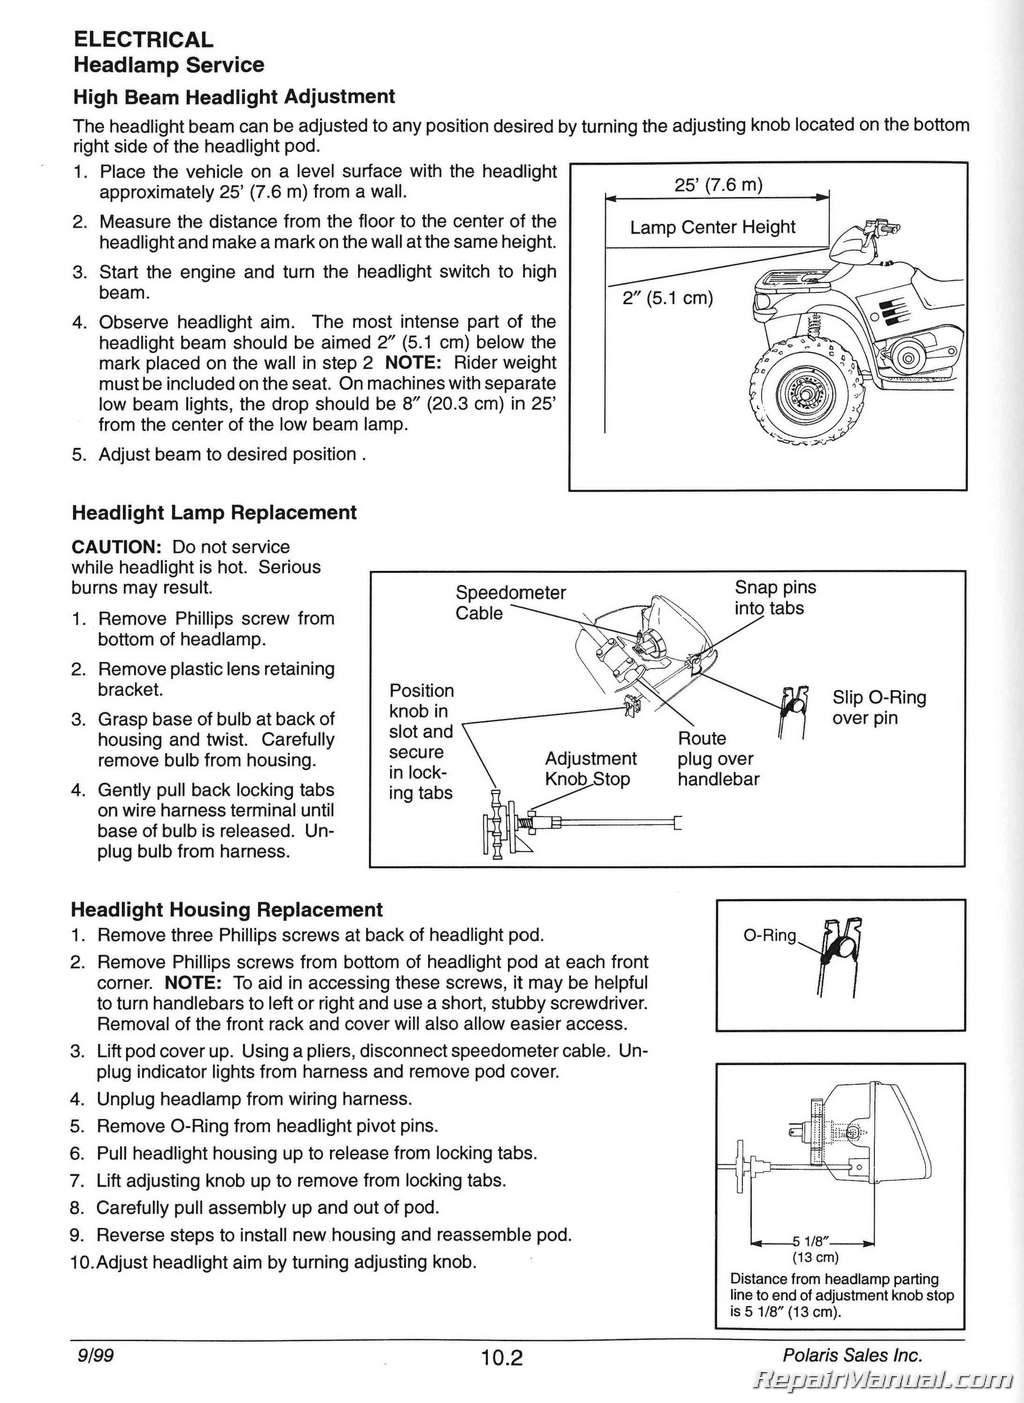 1996-2000 Polaris Sportsman 335 500 ATV Service Manual on polaris engine diagram, polaris ev will not charge, polaris snowmobile wiring diagrams, polaris 700 atv battery, polaris 600 wiring diagram, polaris atv carburetor adjustment, polaris ranger 700 wiring diagram, polaris indy 600 voltage regulator placement, polaris 90 wiring diagram, polaris choke cable parts, polaris atv diagrams, polaris indy 400 wiring diagram, polaris explorer 400 wiring diagram, polaris phoenix 200 wiring diagram, polaris ranger 400 accessories, polaris carburetor diagram, polaris parts diagram, polaris solenoid wiring diagram, polaris ignition wiring diagram, polaris scrambler 400 wiring diagram,